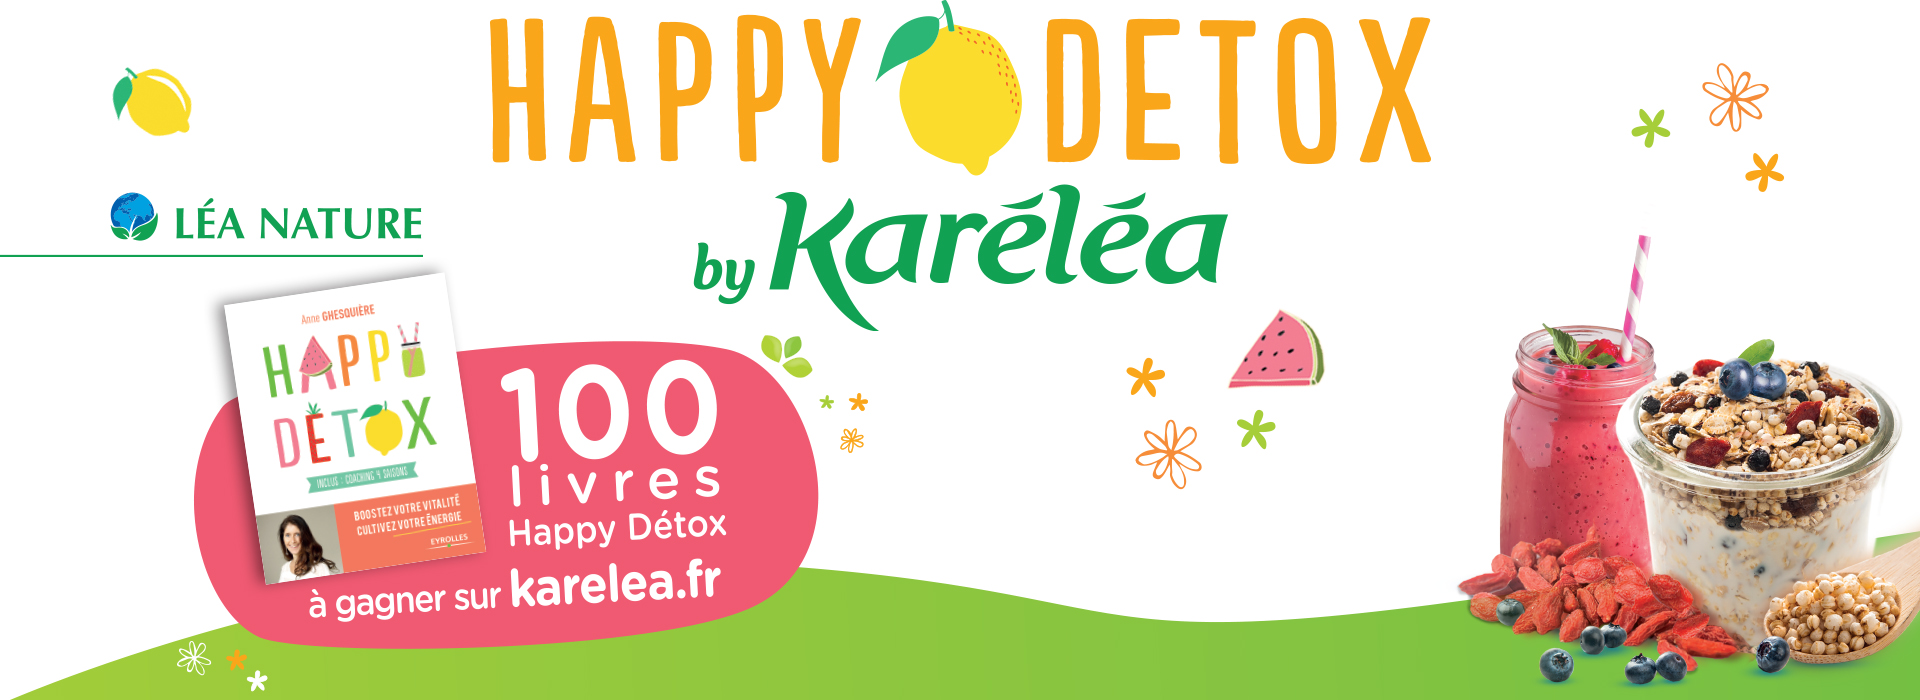 Grand jeu Happy Detox by Karéléa